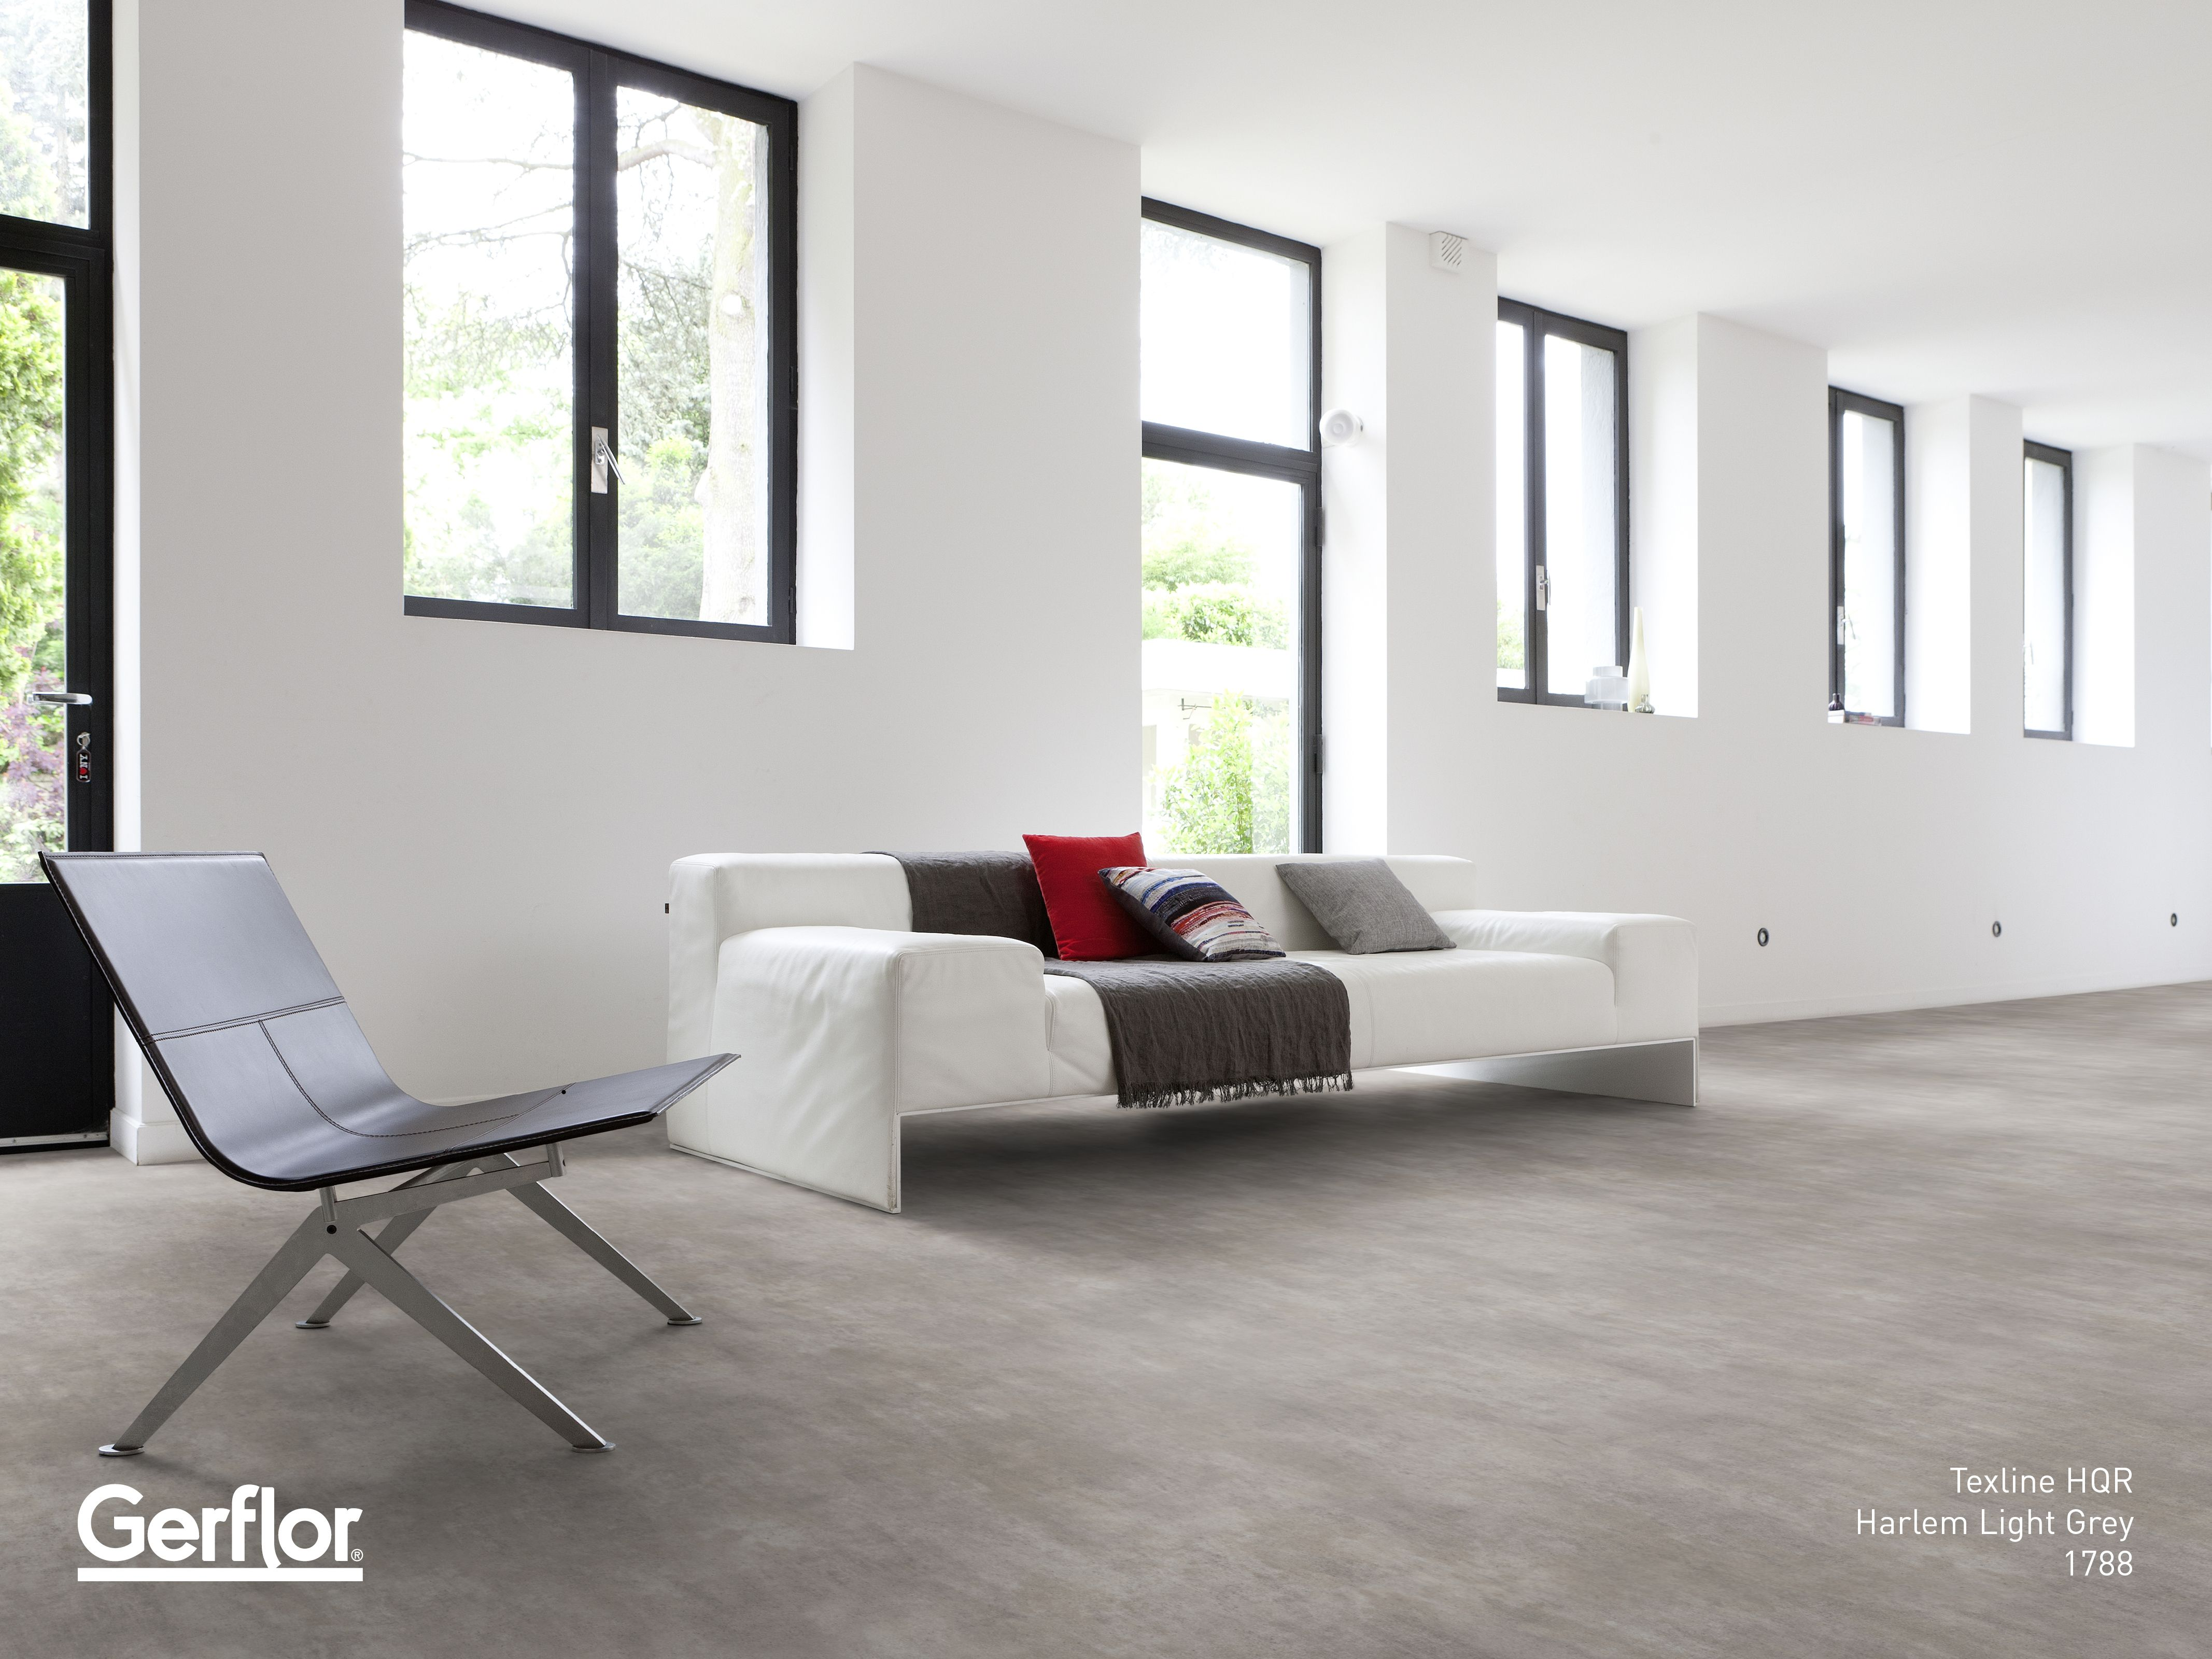 gerflor s new range of texline hqr features graphic lines and